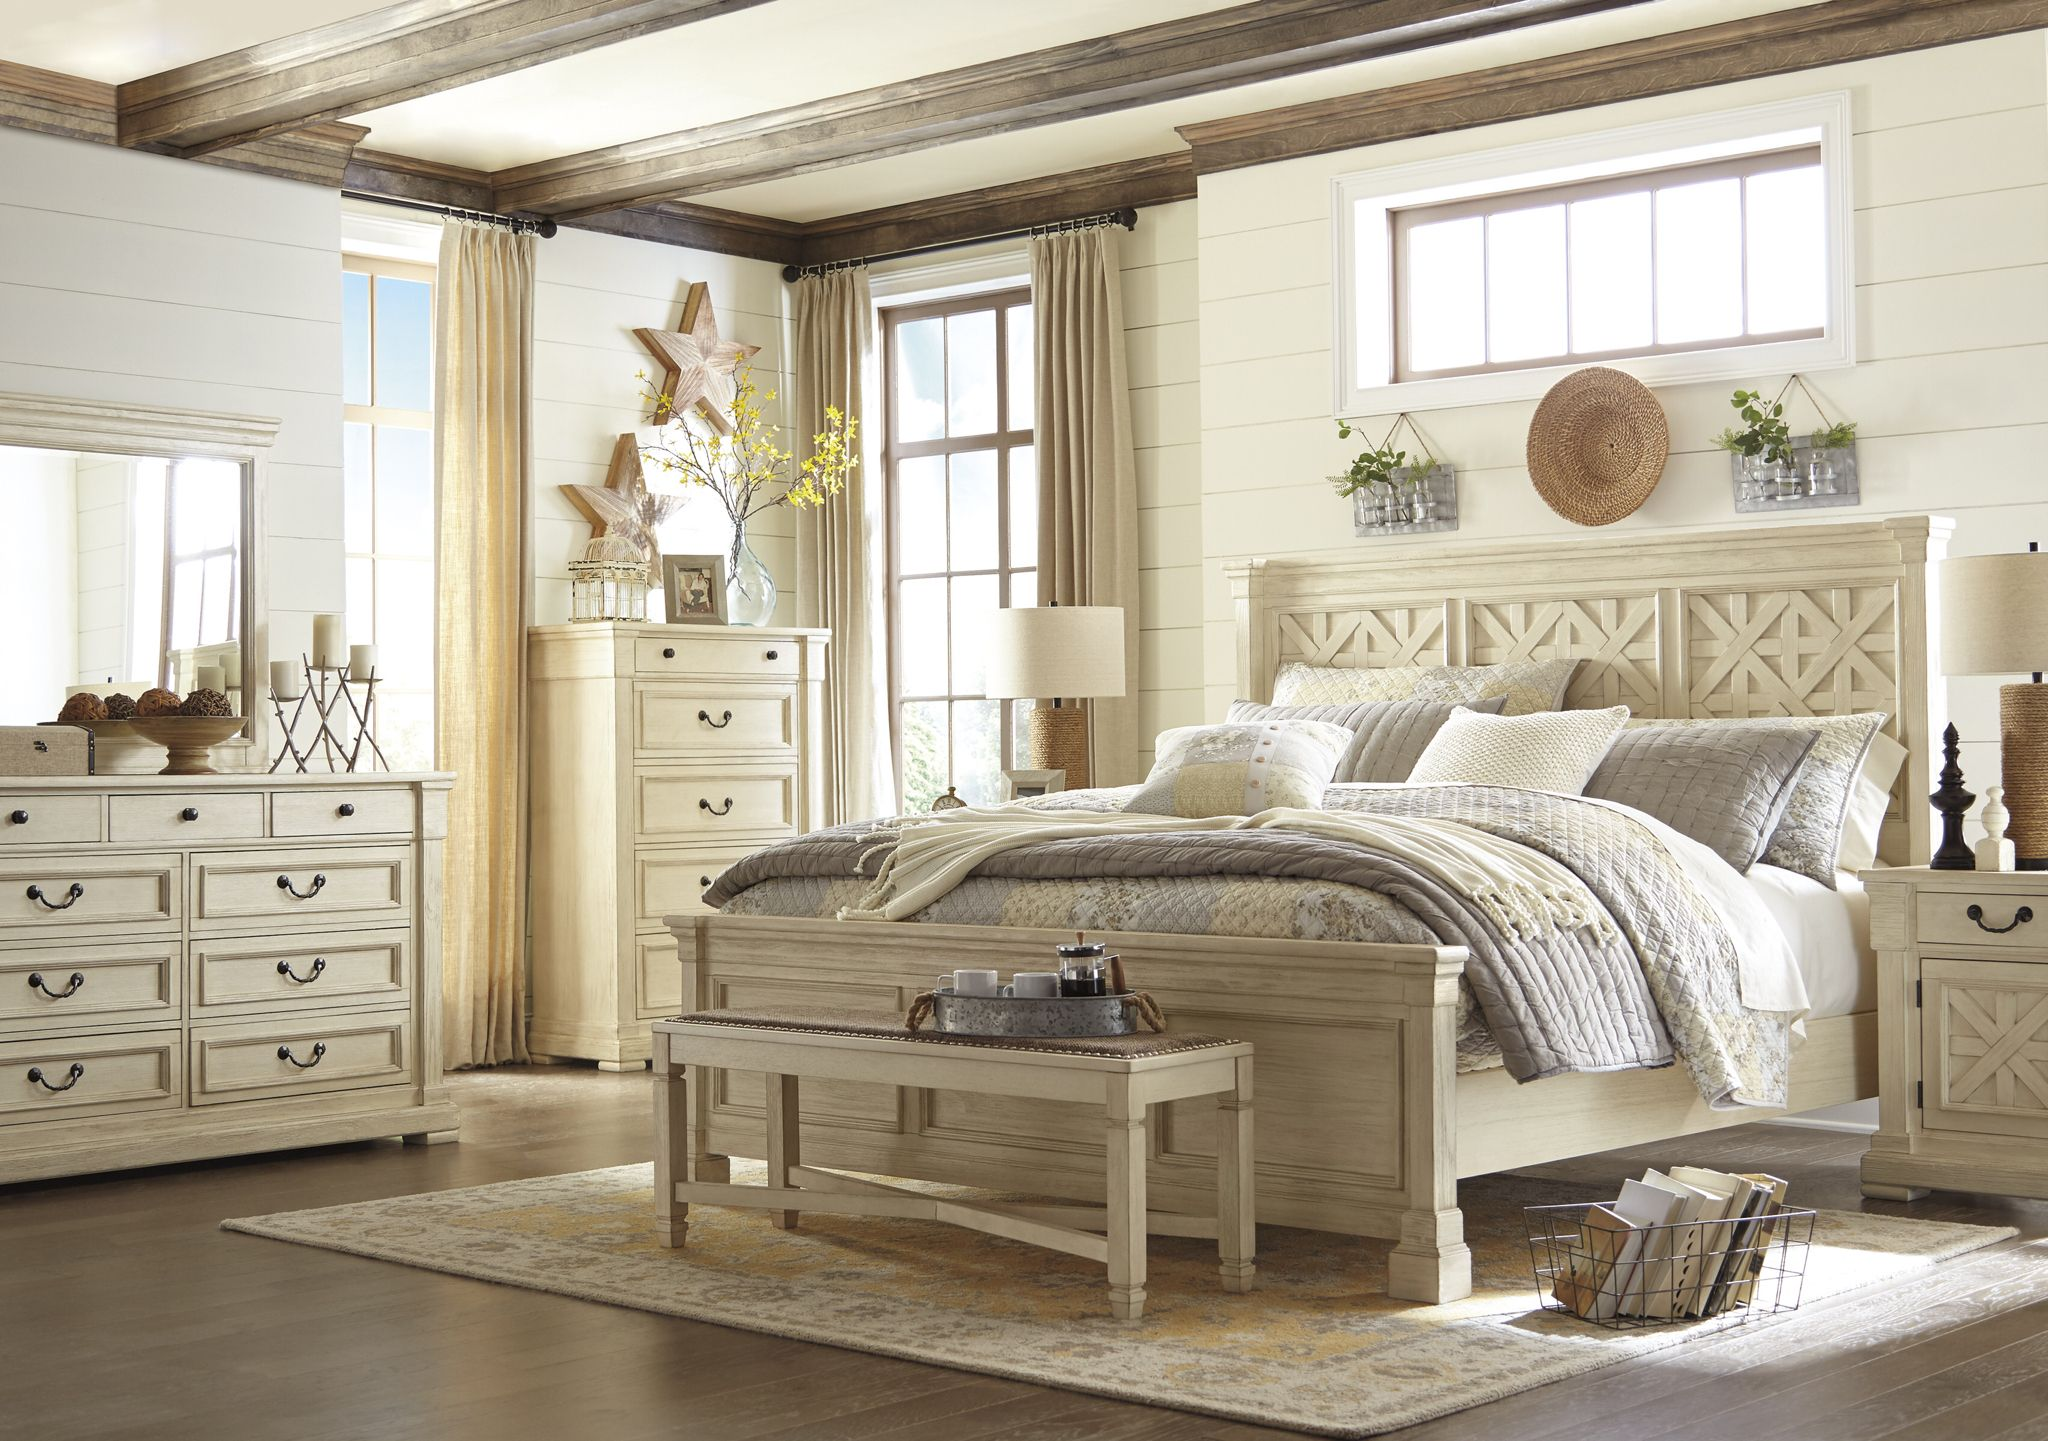 white bedroom suite. Bolanburg White Louvered Panel Bedroom Set from Ashley  Free Delivery The suite is made with acacia veneers